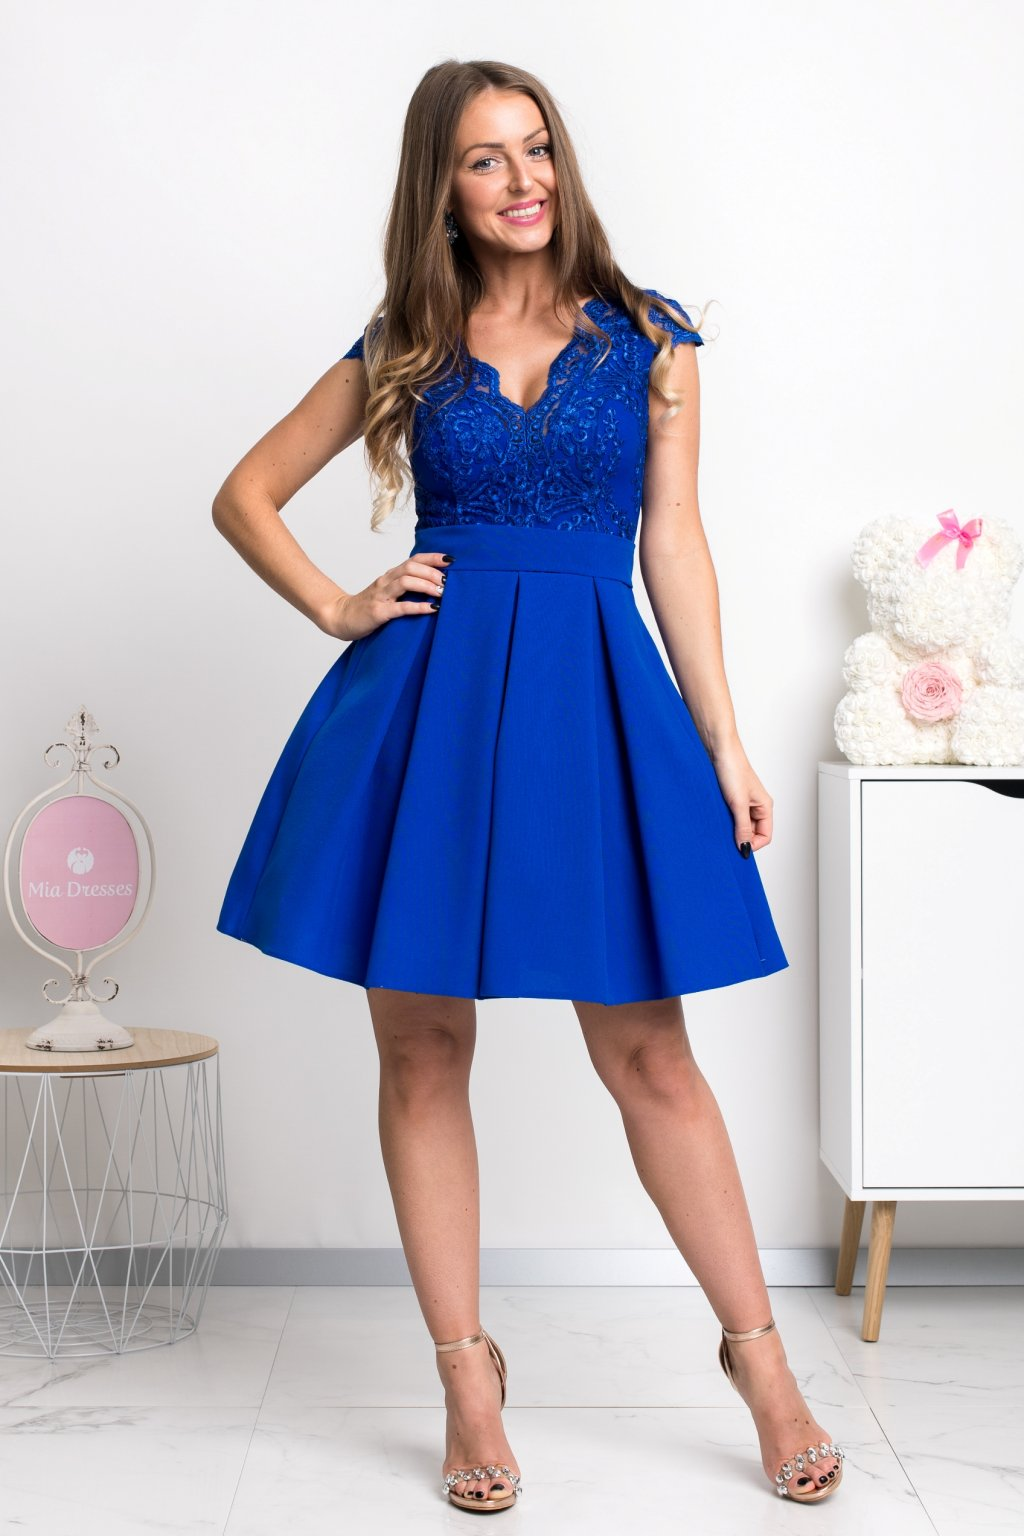 Blue a-line formal mini dress